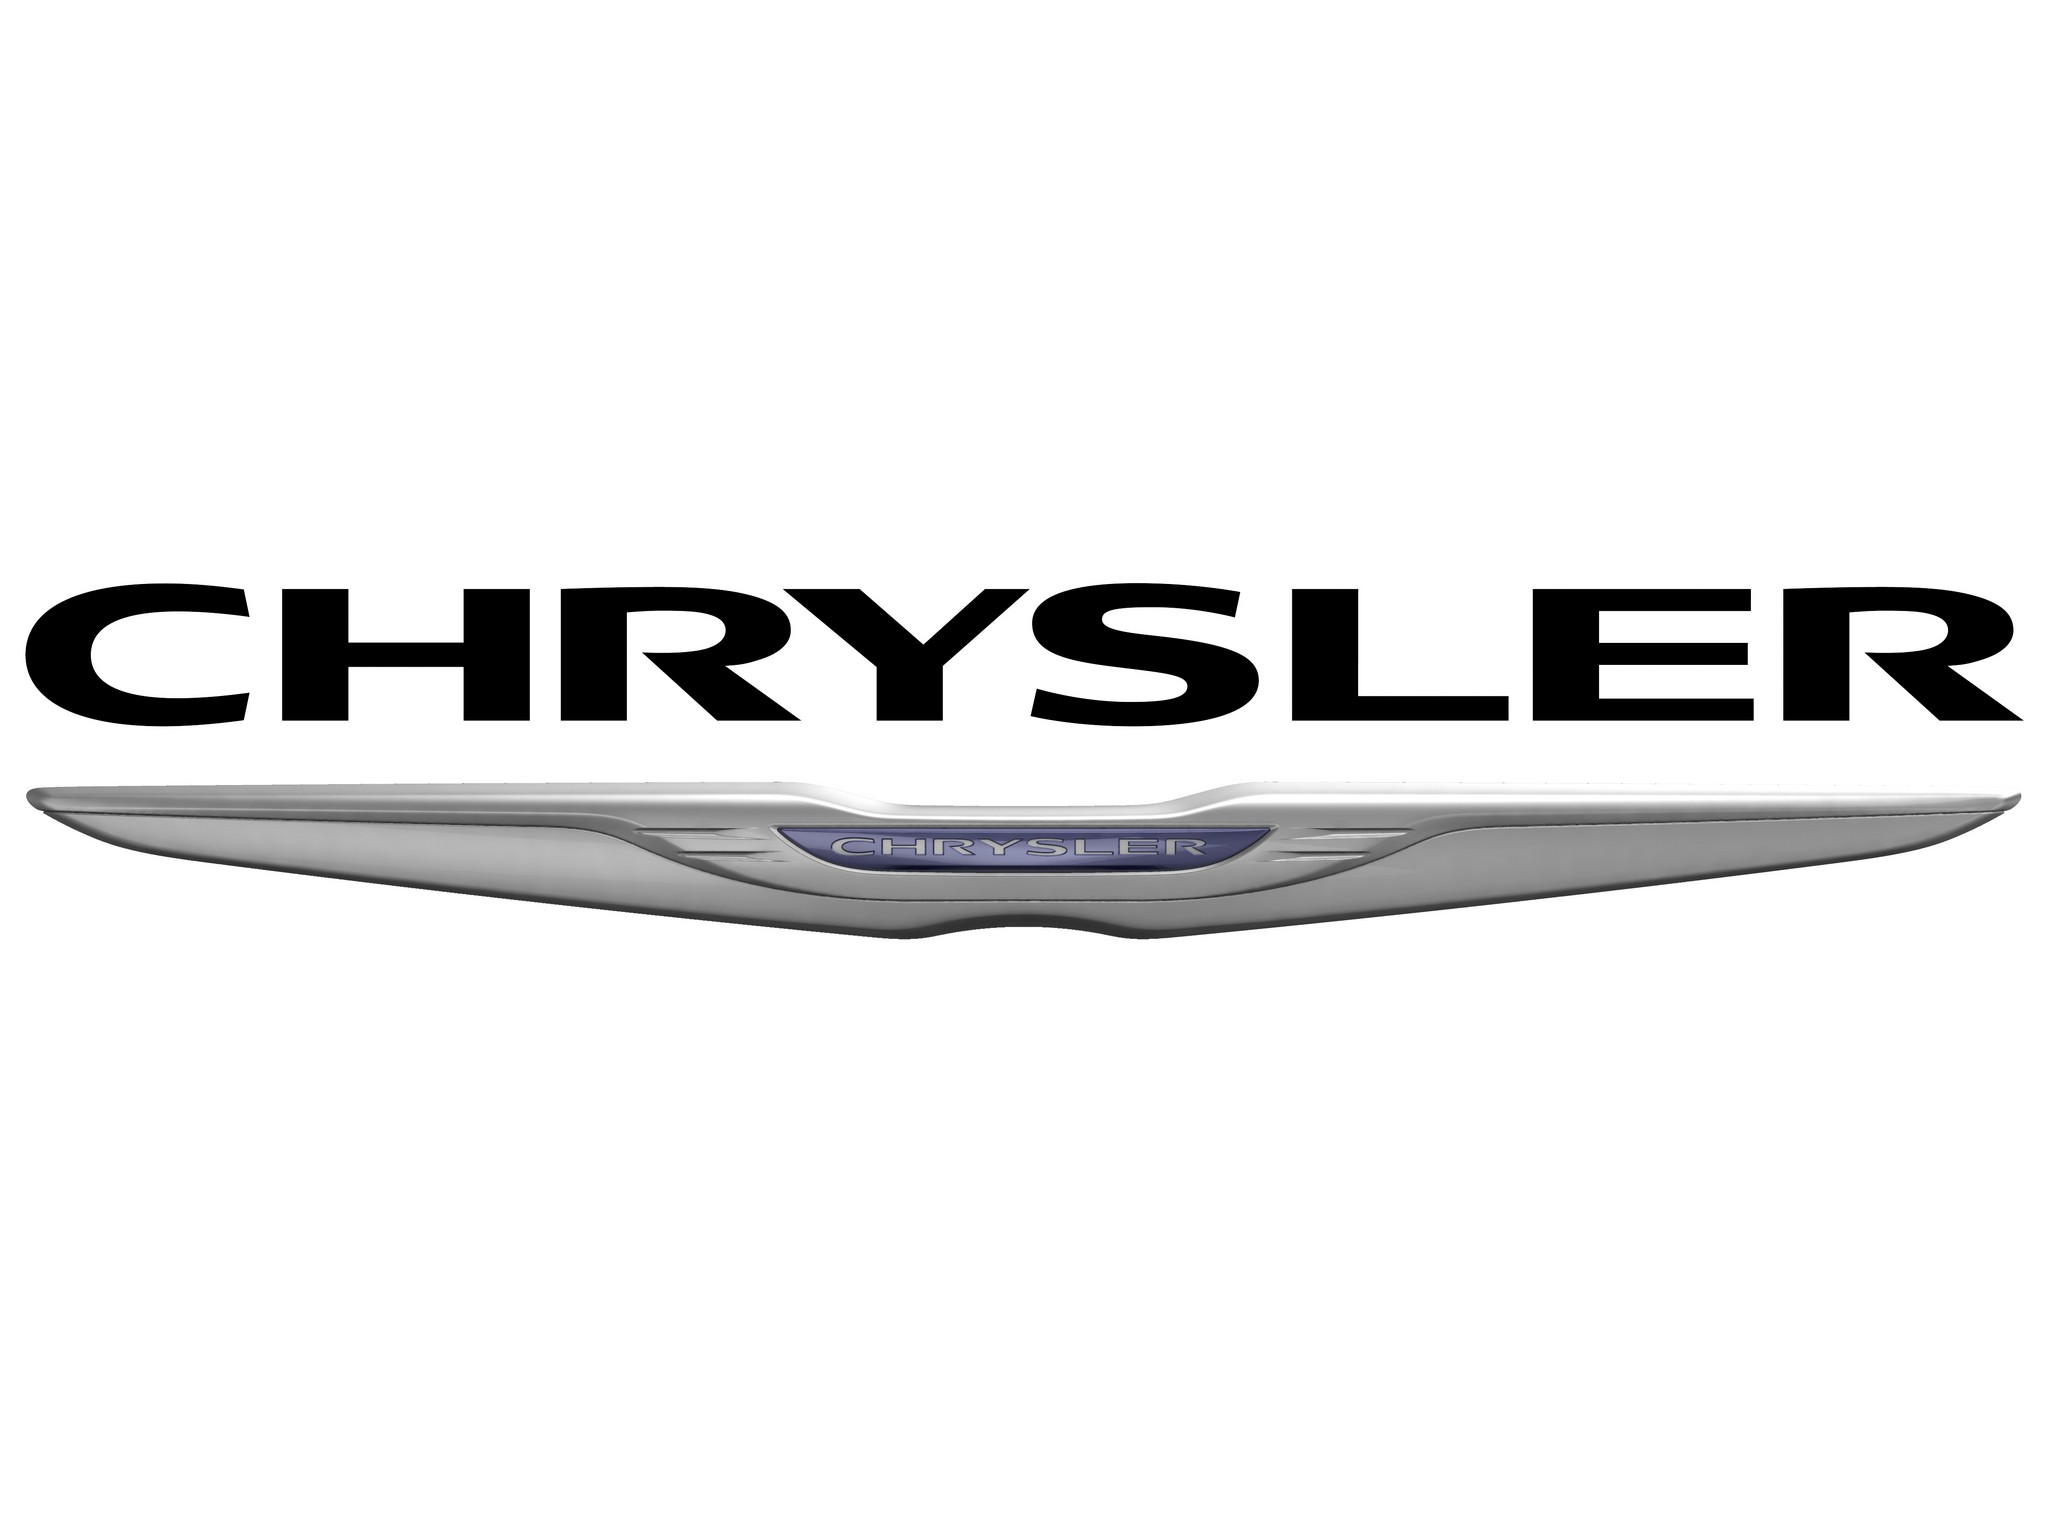 chrysler auto logo with - photo #17